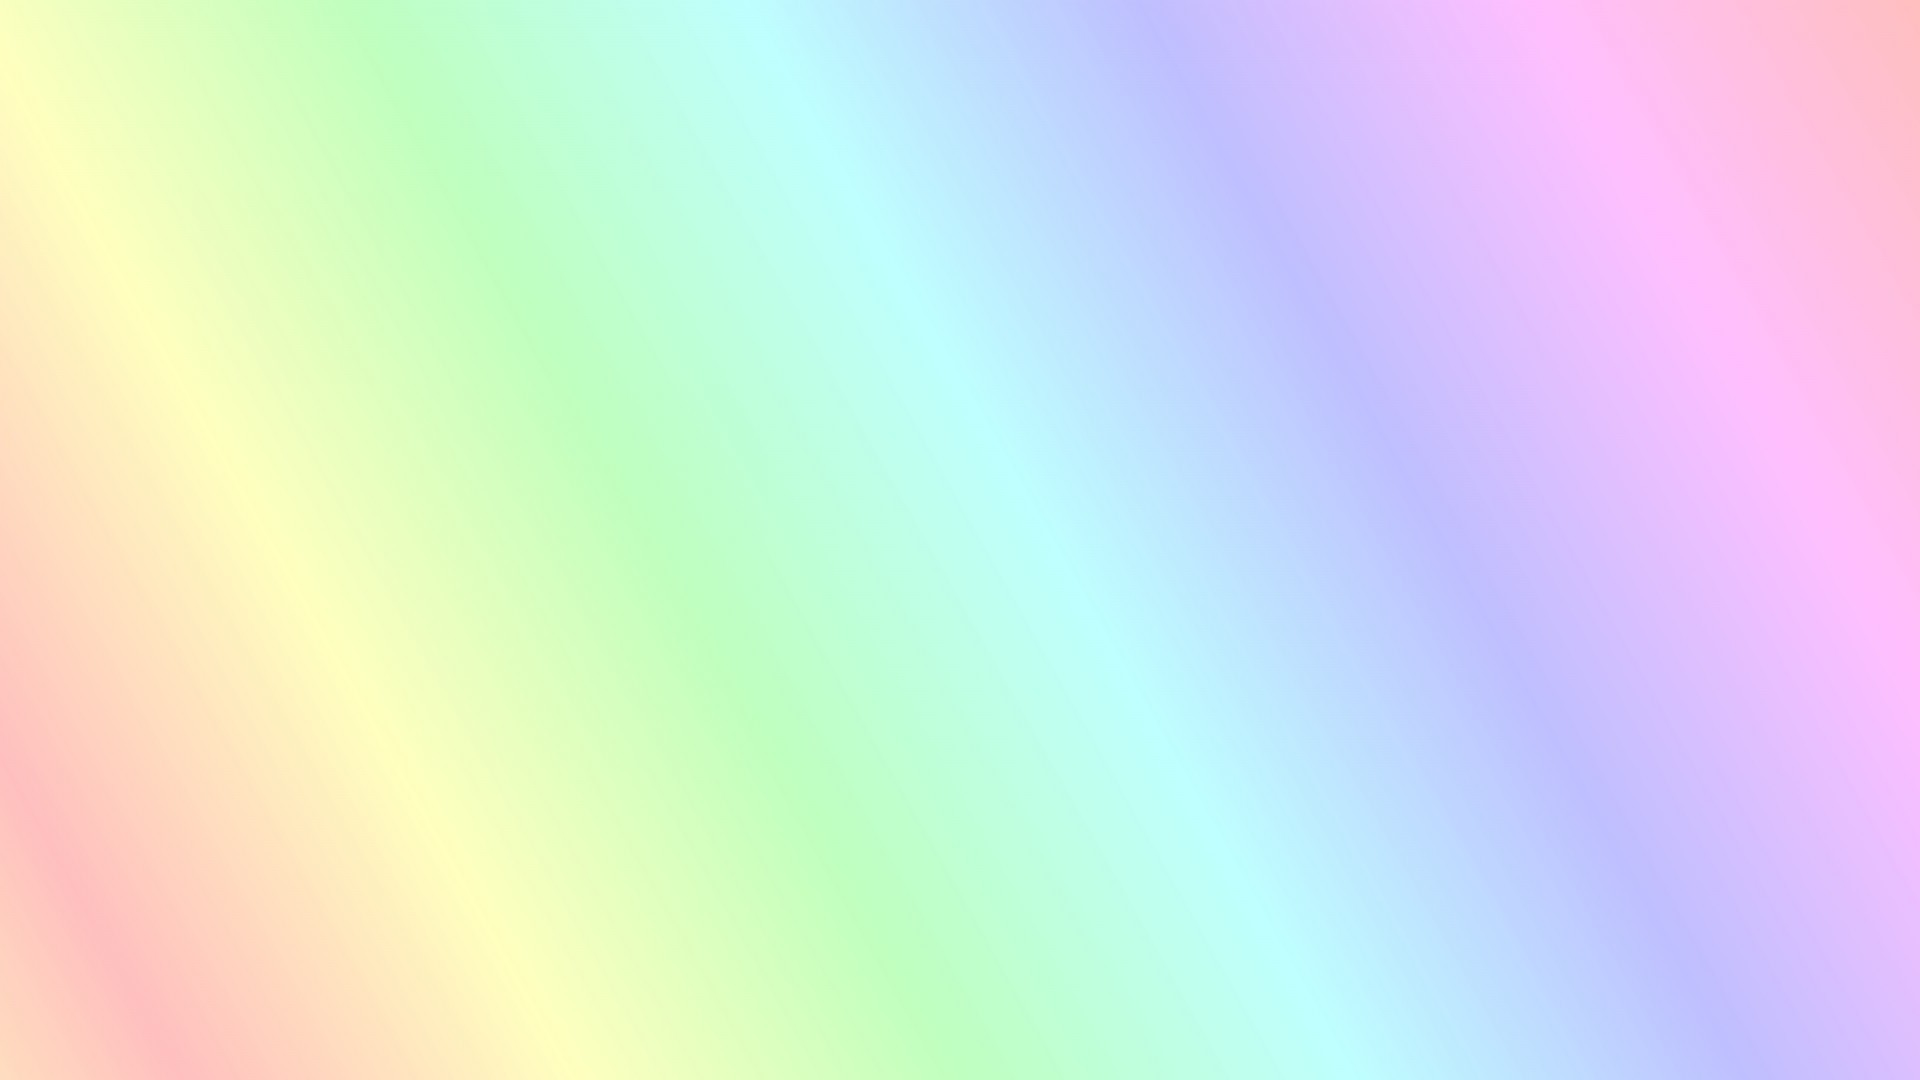 Pastel wallpapers 74 background pictures - Pastel background hd ...